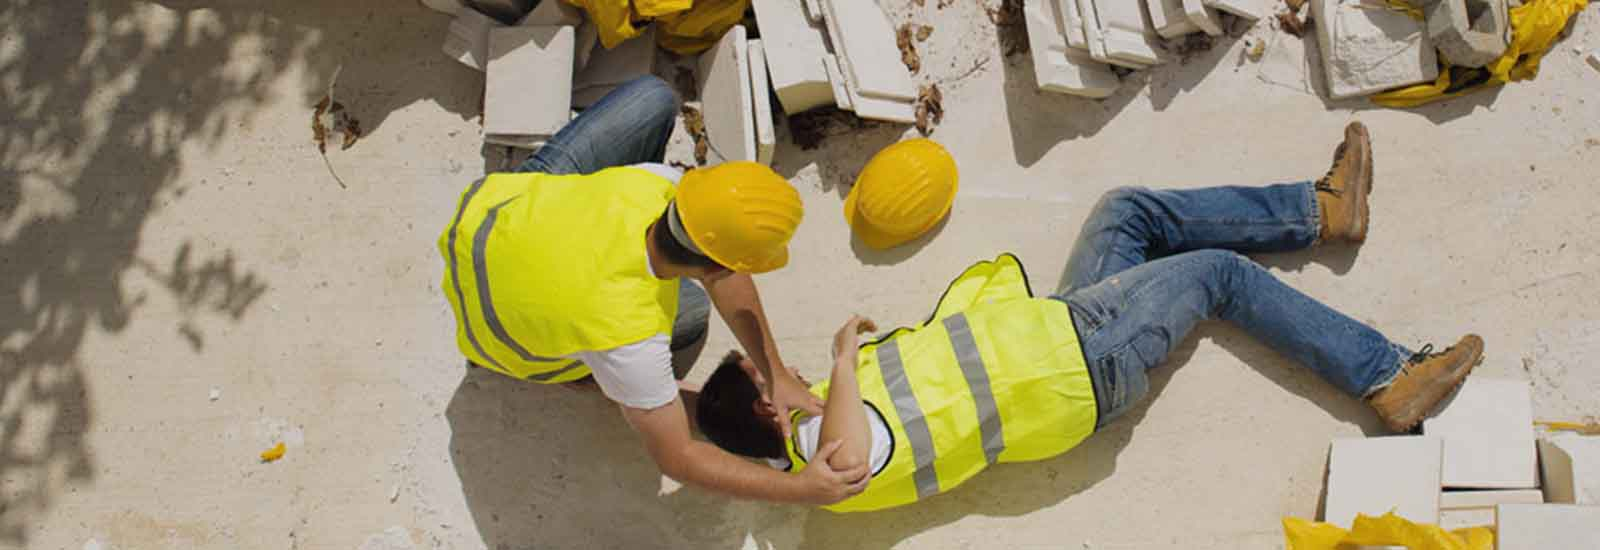 What is Texas Workers' Compensation Insurance?